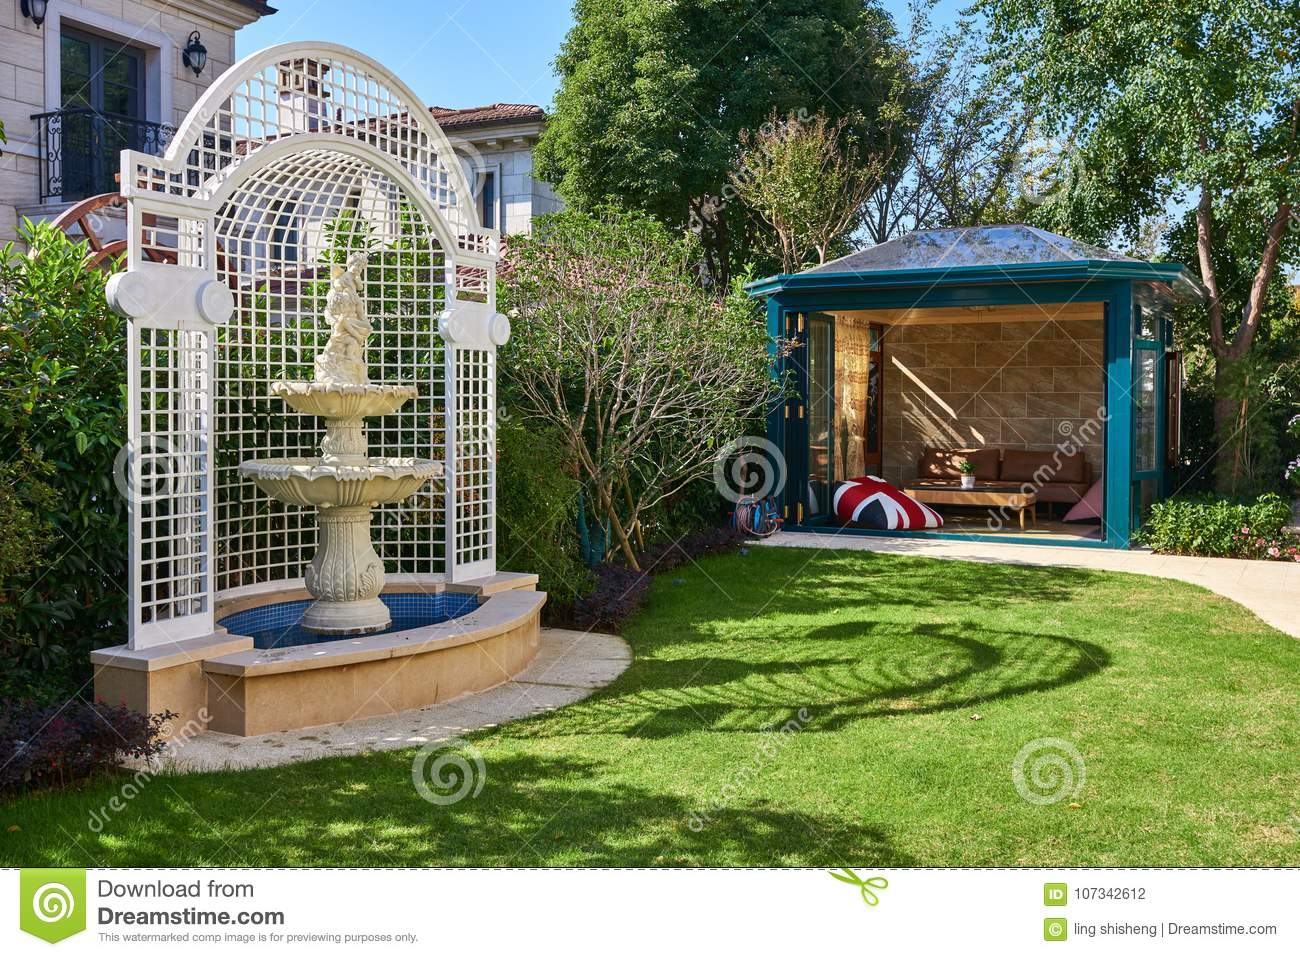 Download Fountains And Chalets In The Garden Stock Photo   Image Of  Flowers, Residential: